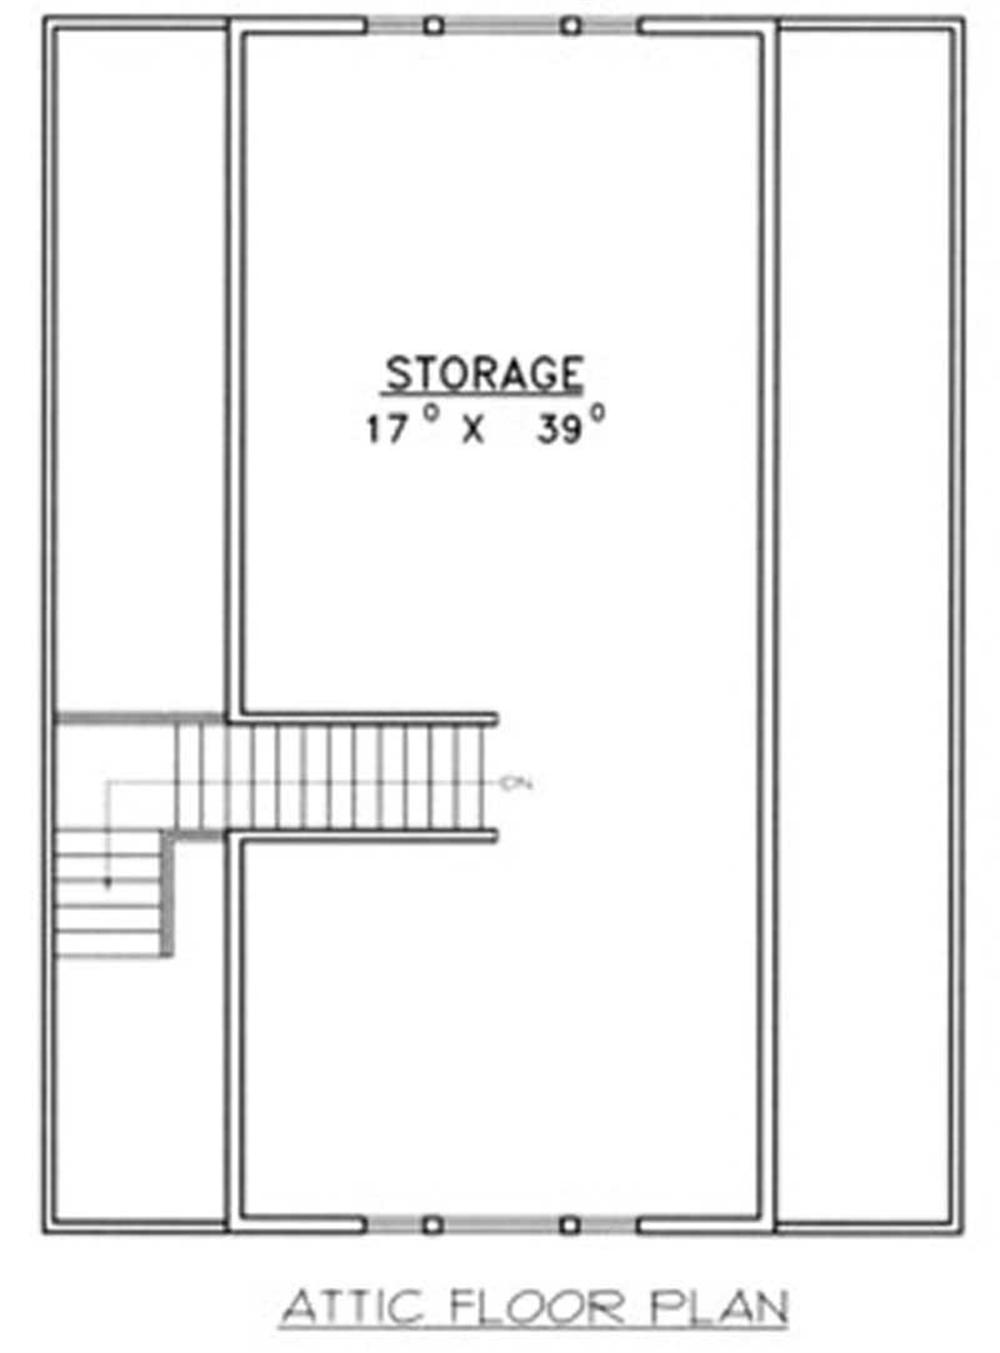 Garage w apartment with 4 car 720 sq ft plan 132 1370 for 720 sq ft apartment floor plan